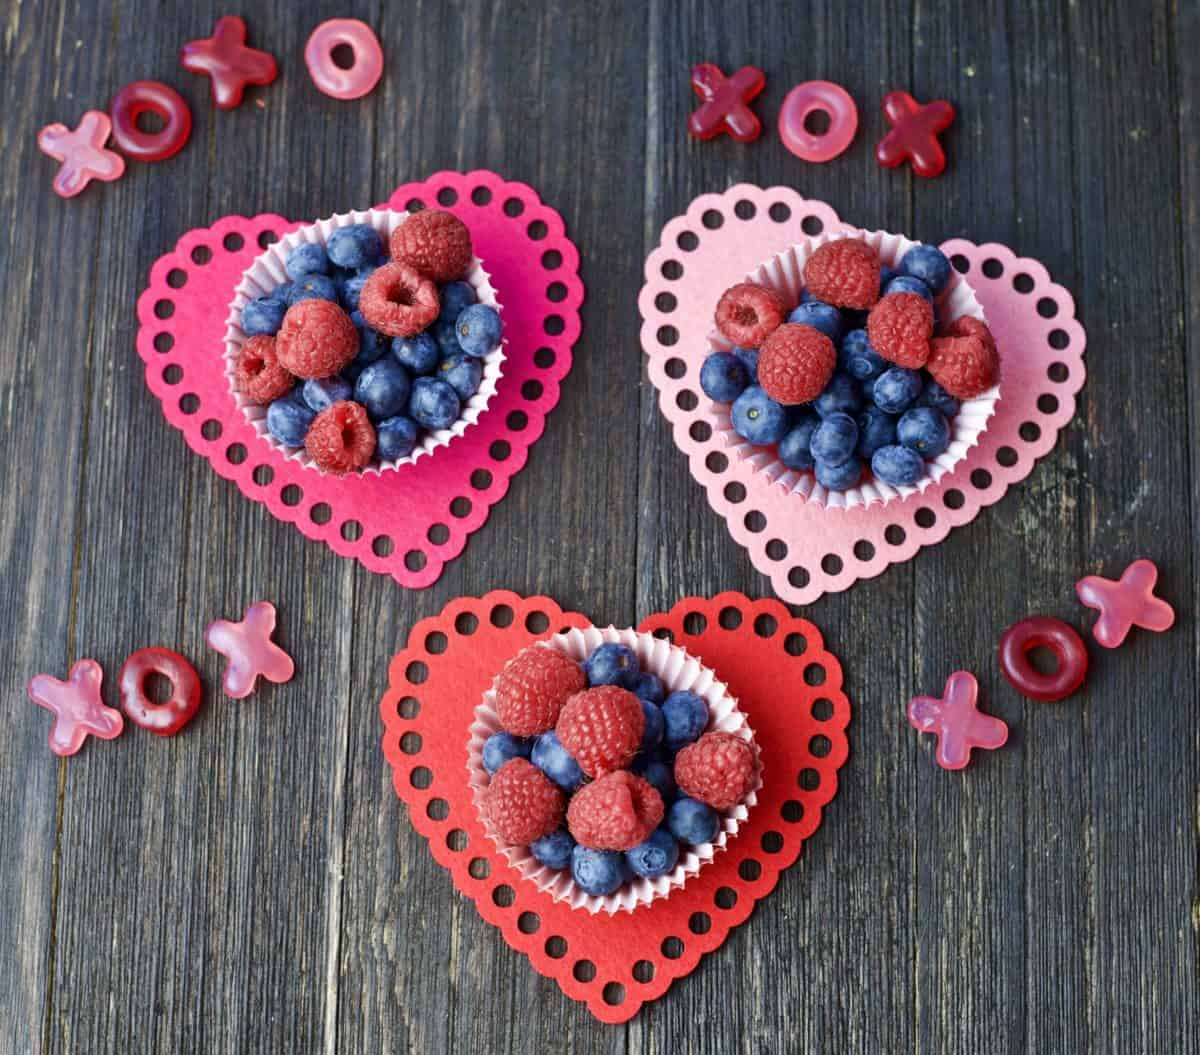 berry bowls with candy xoxo surrounding